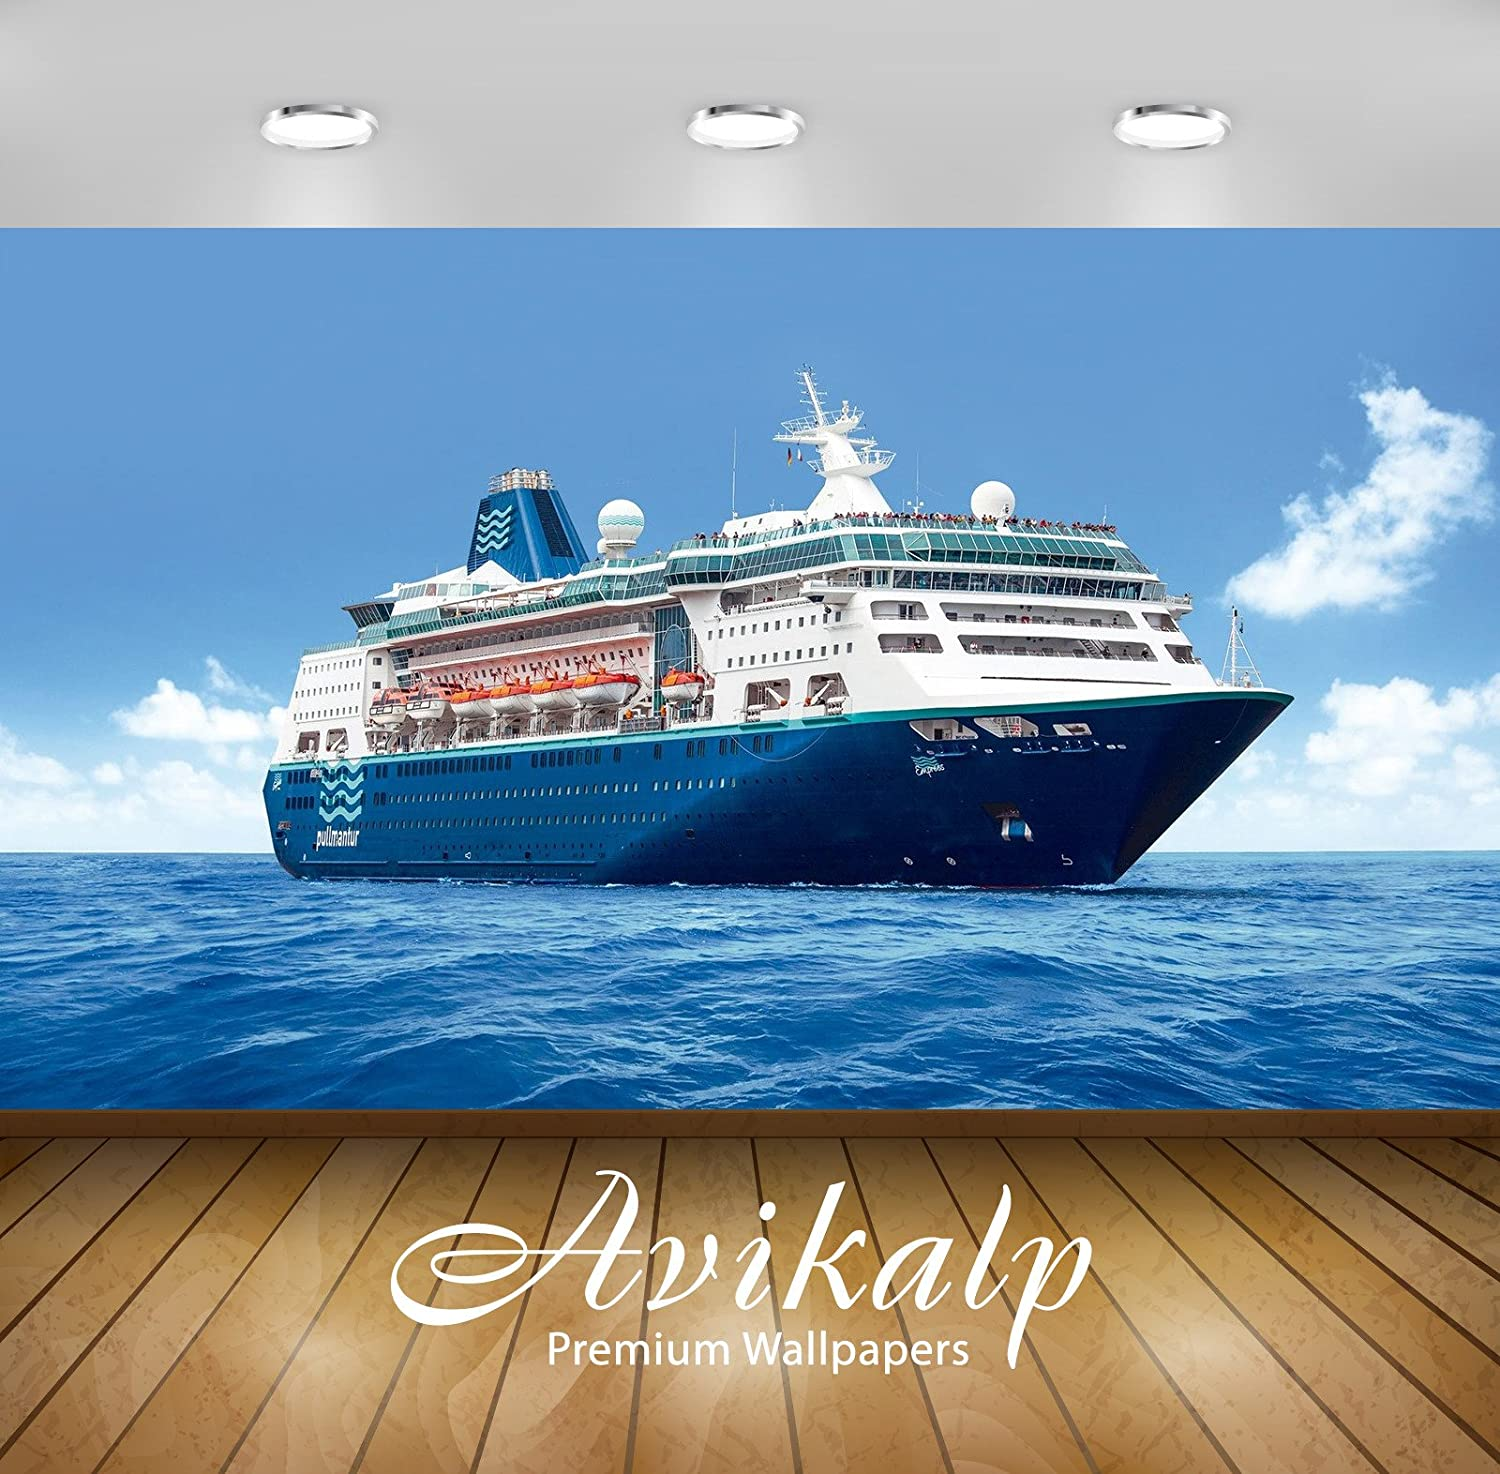 Buy Avikalp Exclusive Awi3156 Travel With Beautiful Ship Empress Full Hd Wallpapers 9 X 7 Ft Online At Low Prices In India Amazon In